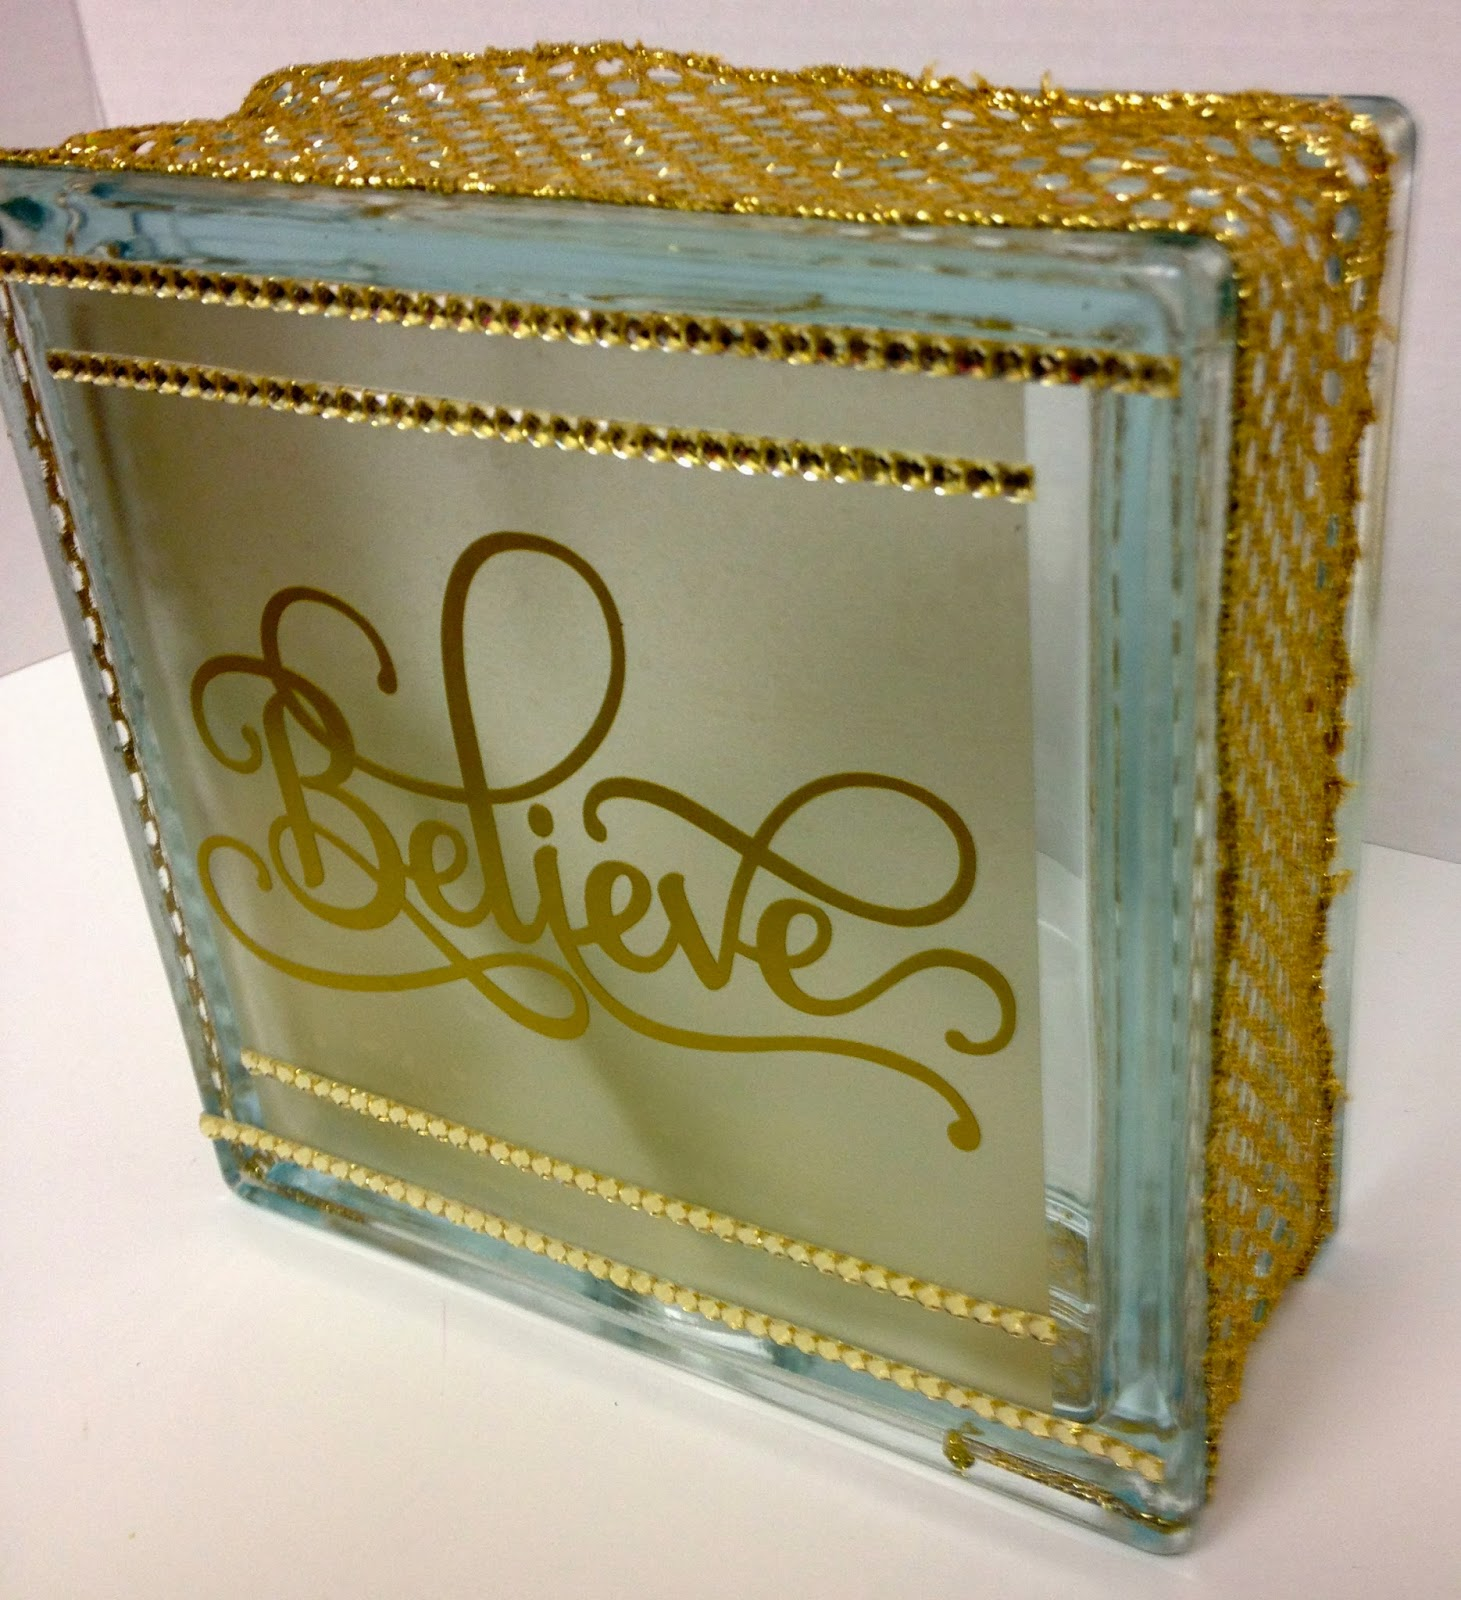 Glass block crafts projects - I Truly Can Not Get Enough Of These Glass Block Projects 0